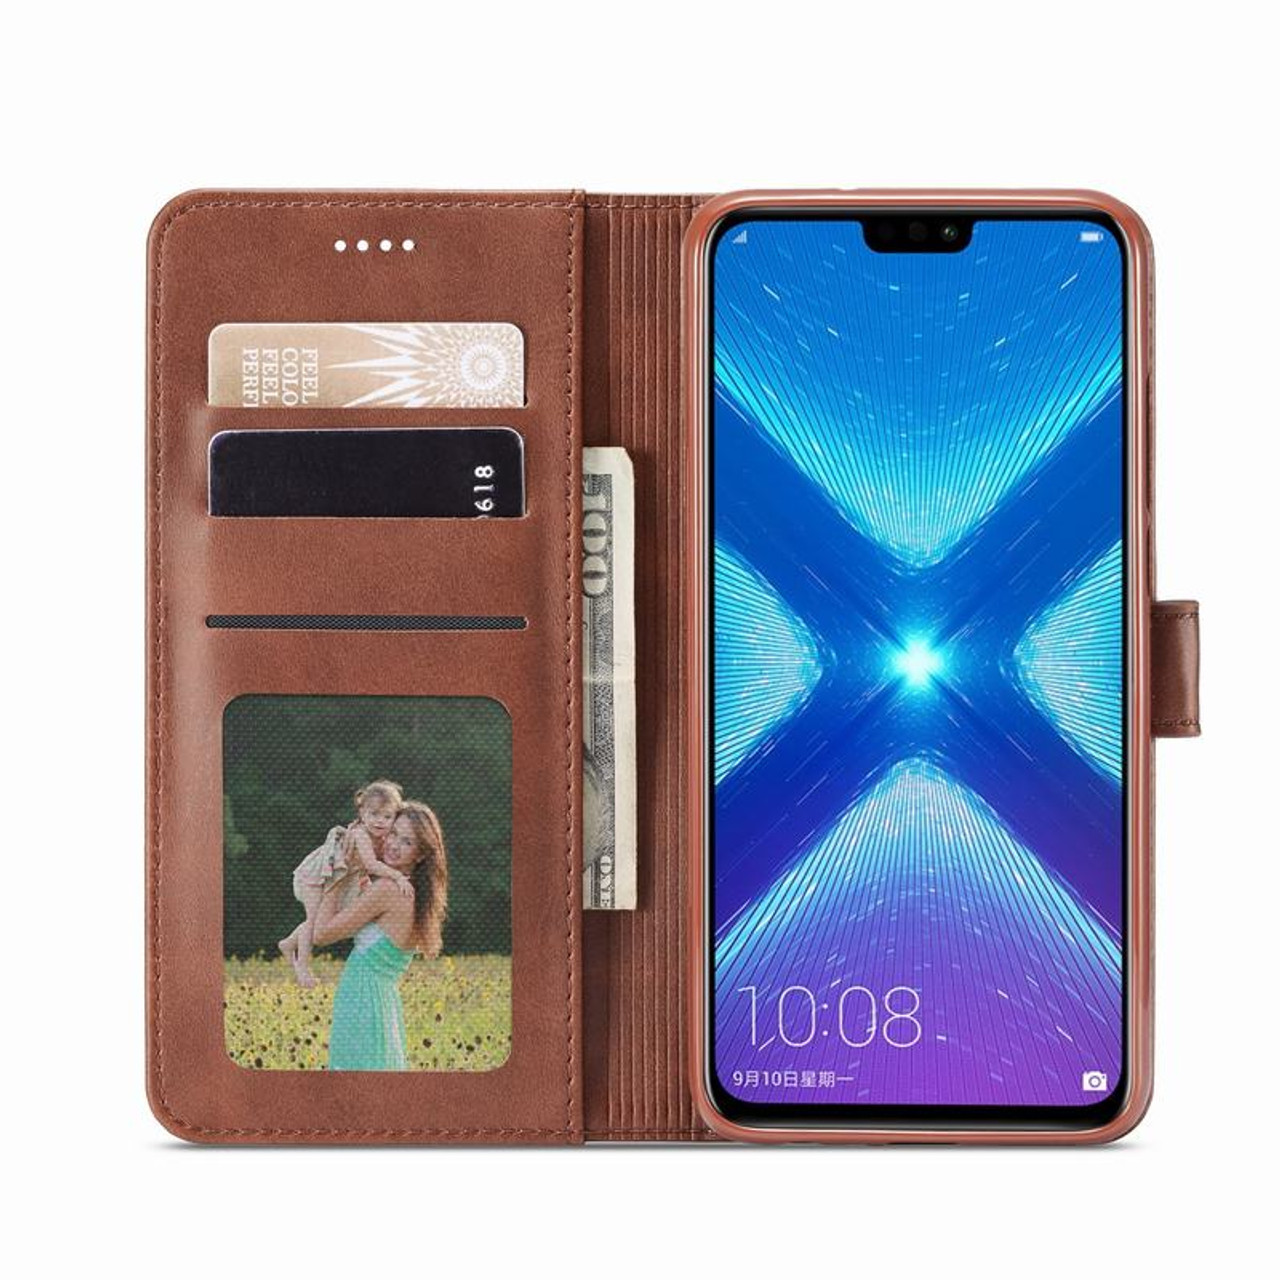 sports shoes e92f5 389c5 Honor 8X Case Flip Cover For Huawei Honor 8X Case 6.5 inch Luxury PU  Leather Wallet Holder For Funda Huawei Honor 8 X Honor8X